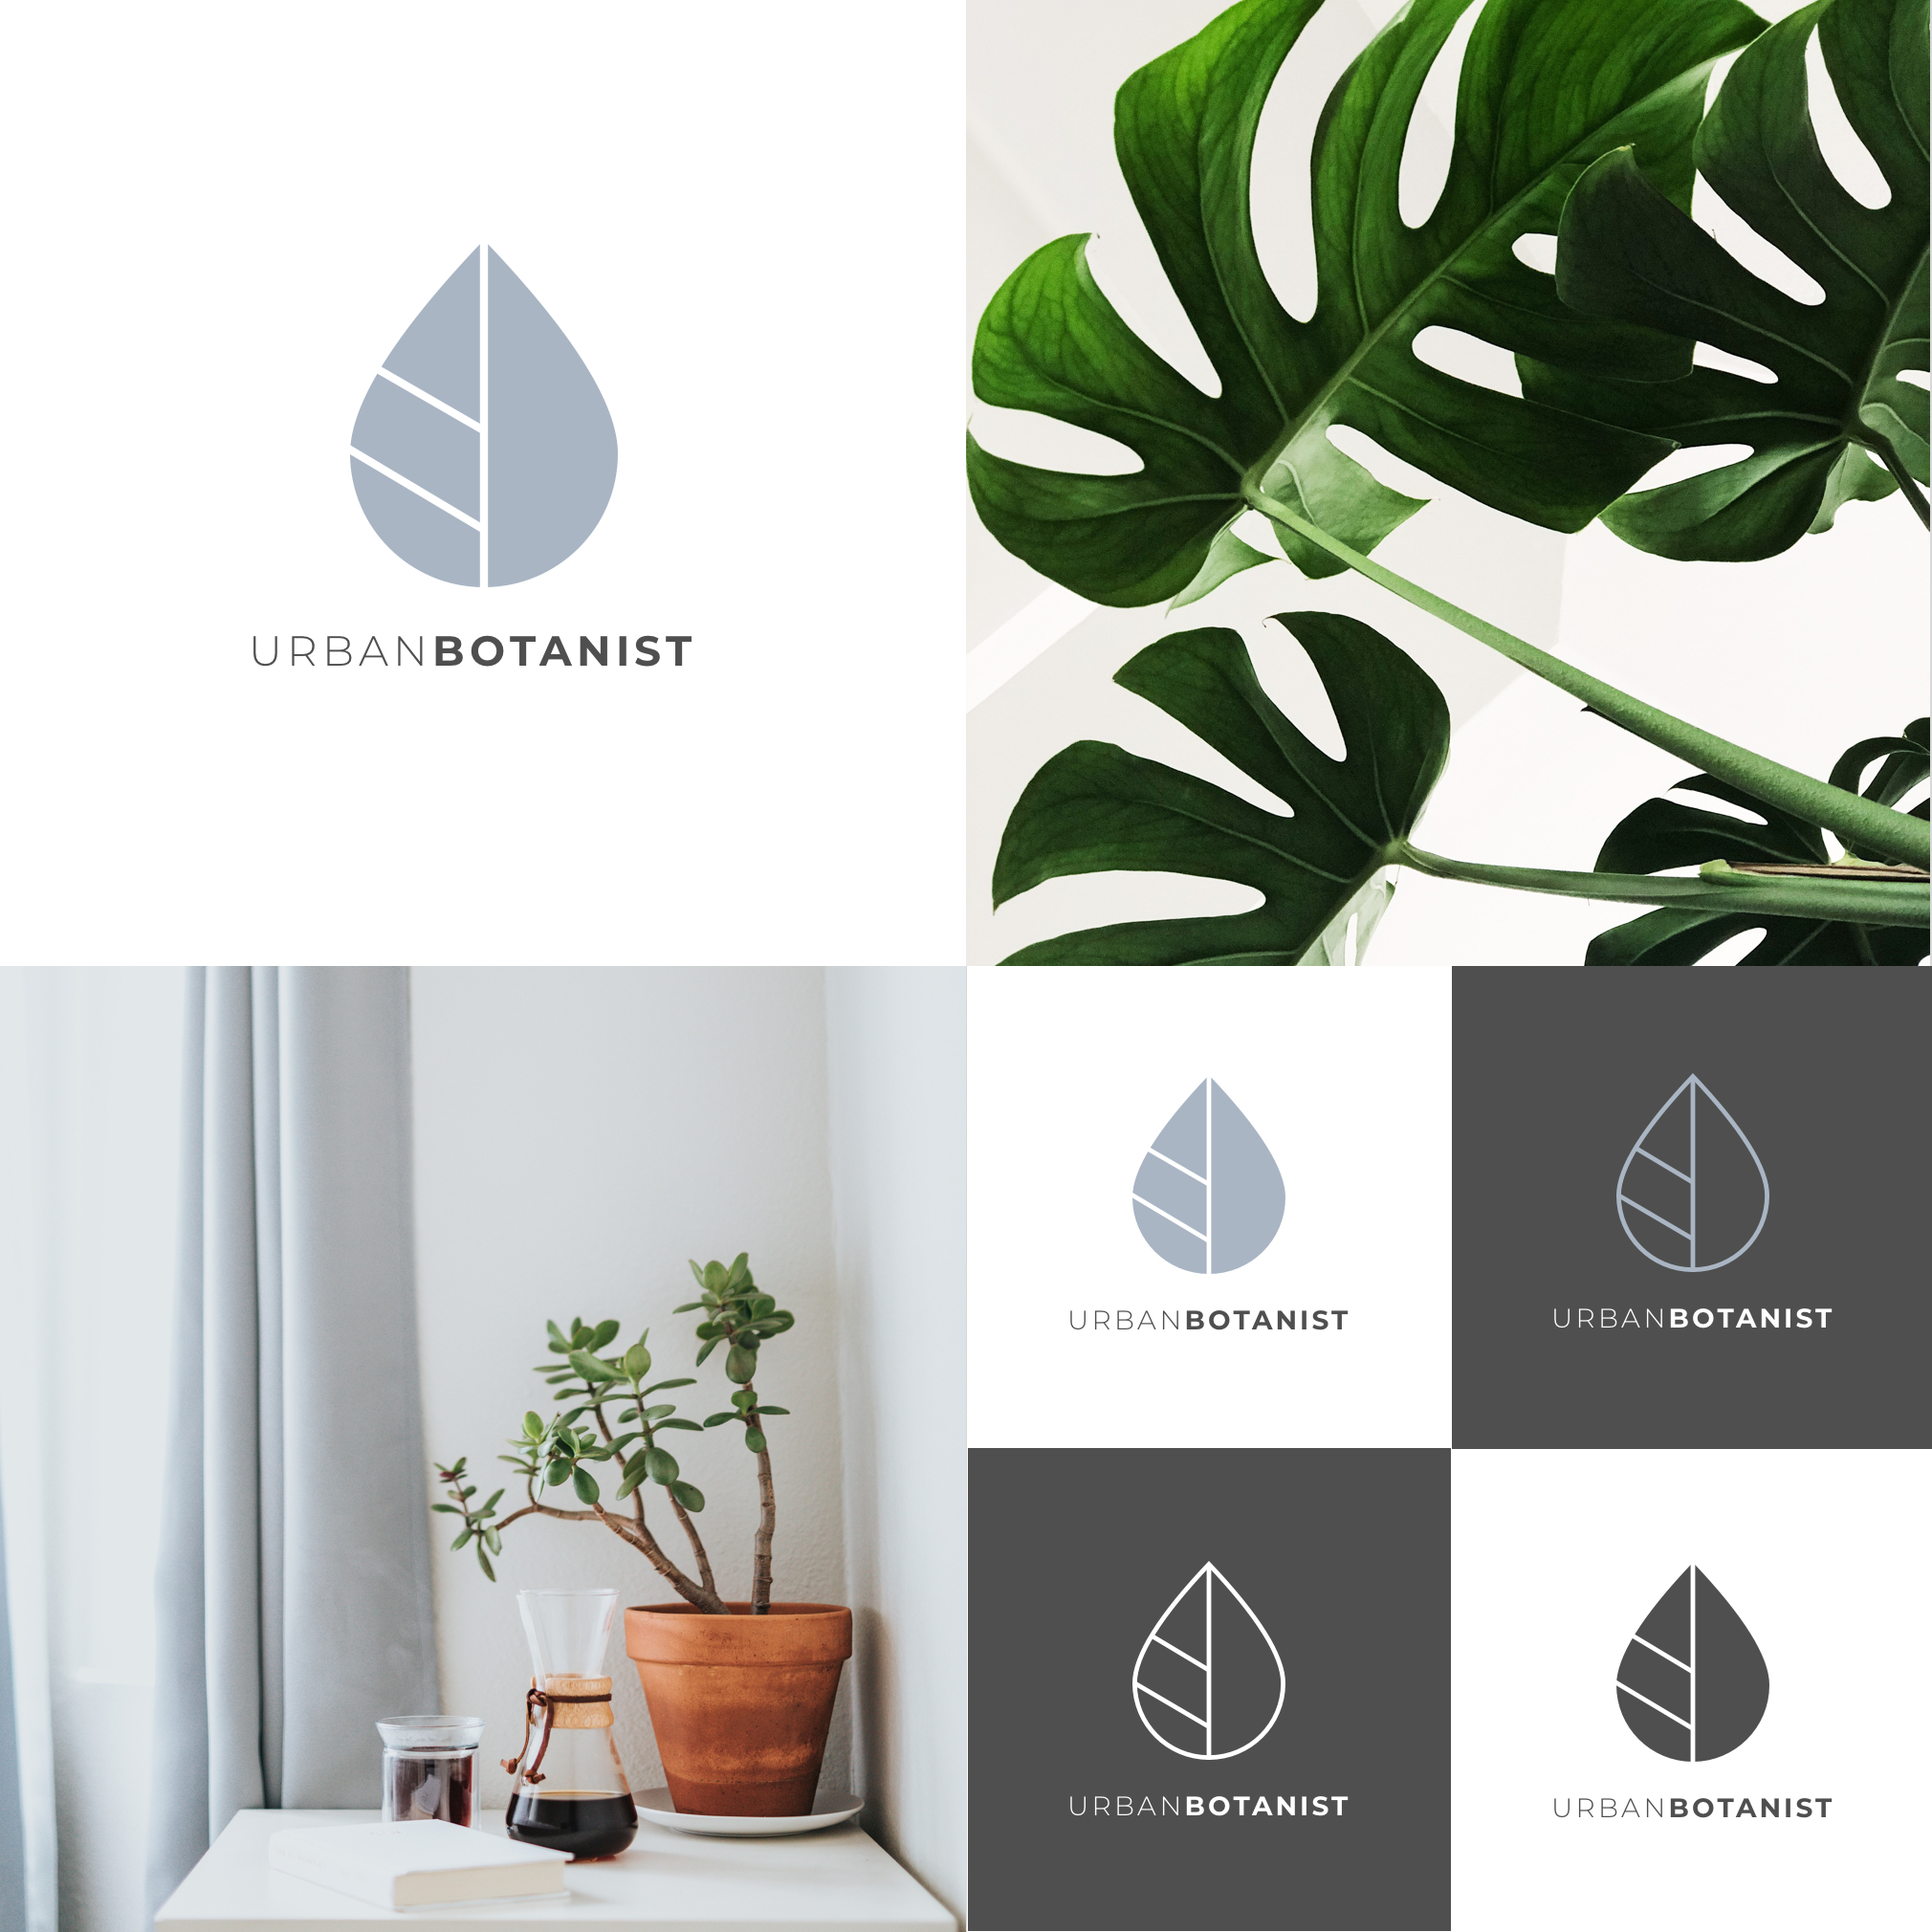 The Urban Botanist logo reflects both the water droplet and plant leaf.